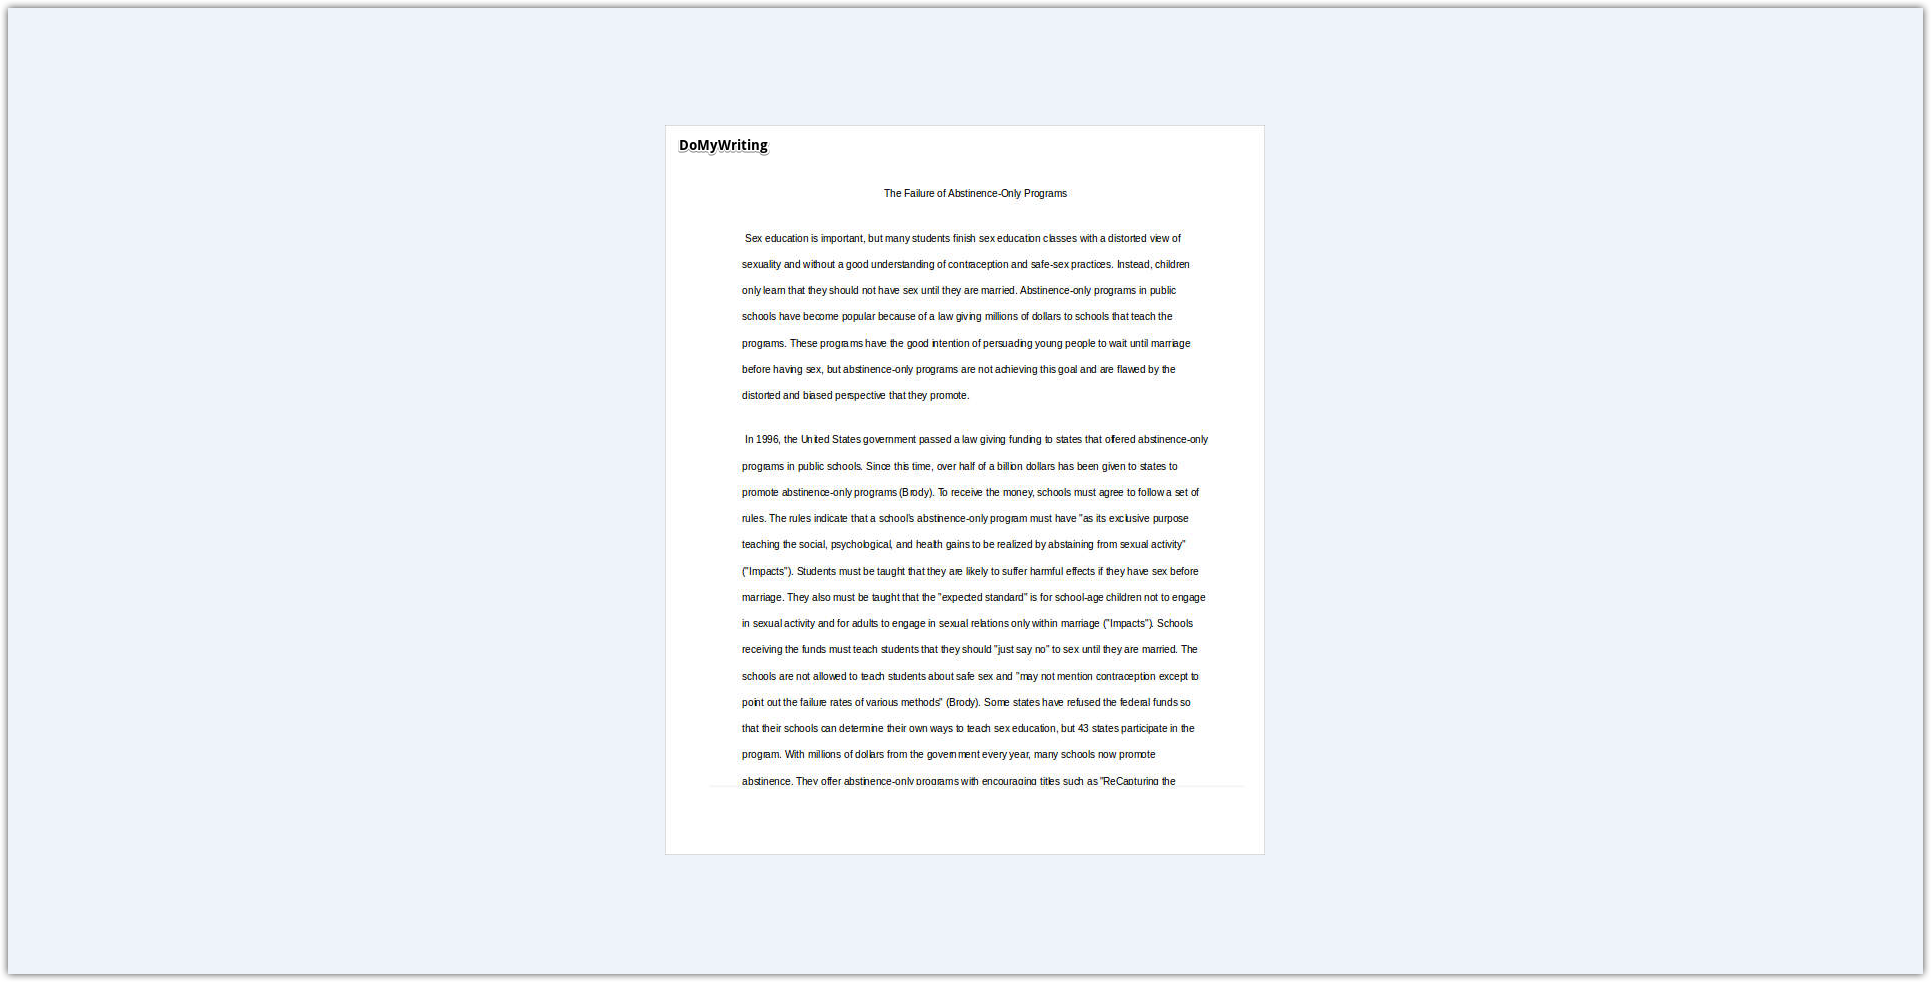 009 Pursuasive Essay Example Persuasive Stirring Structure Topics For Middle School About Music Full